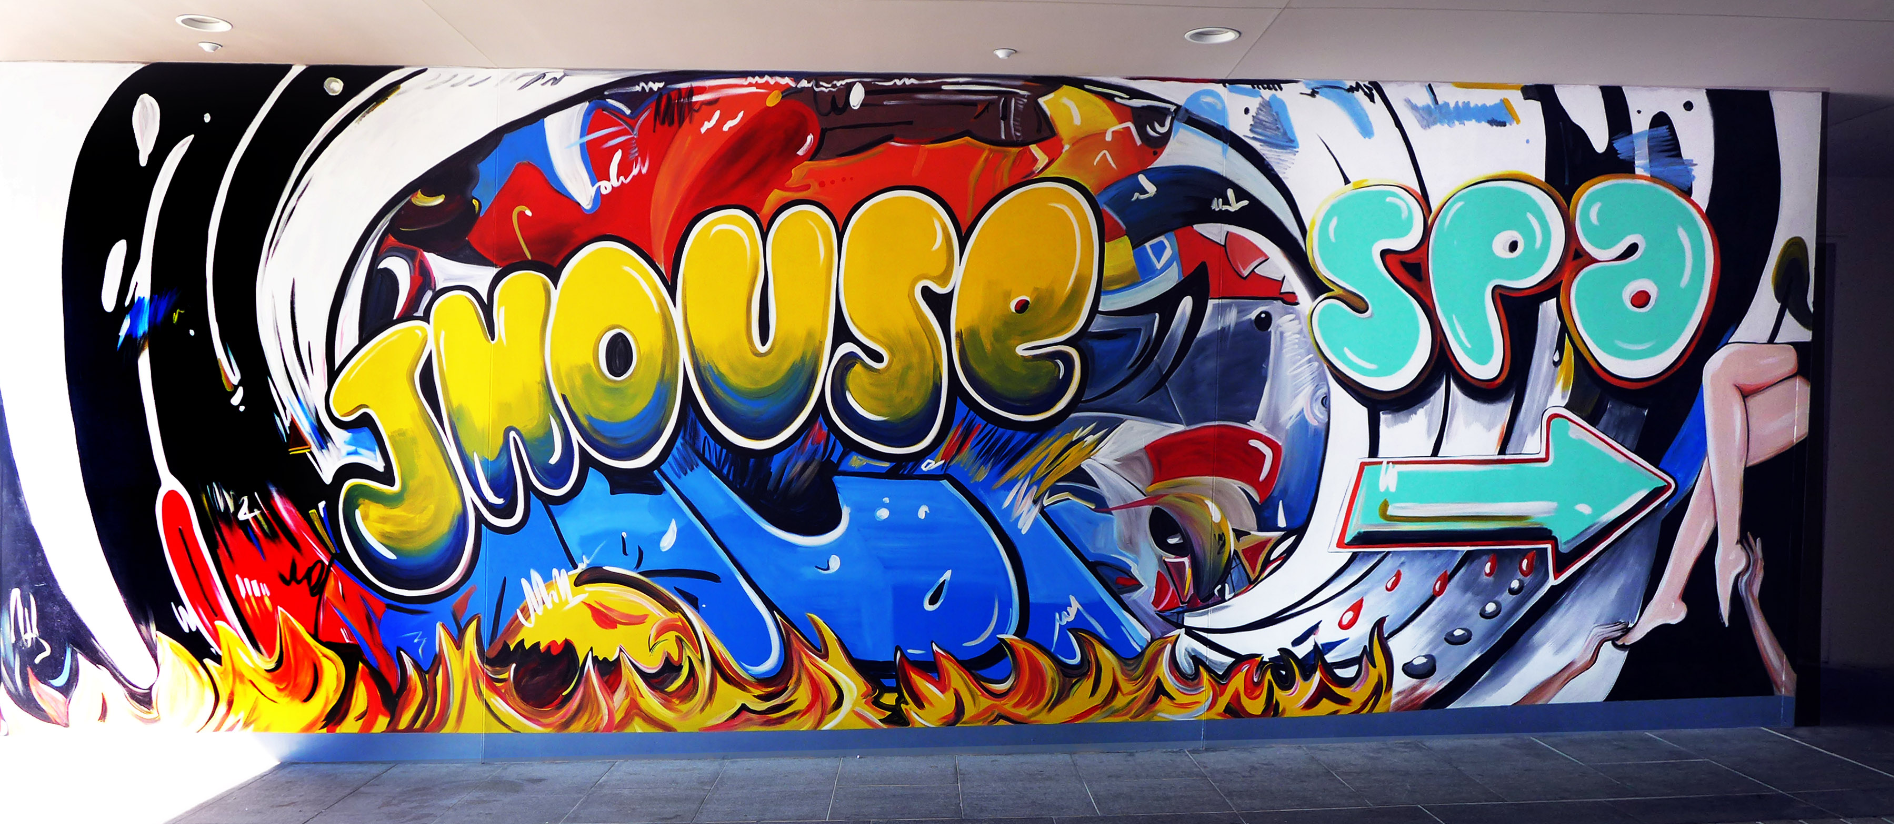 Hotel Mural by CT Muralist Manrique